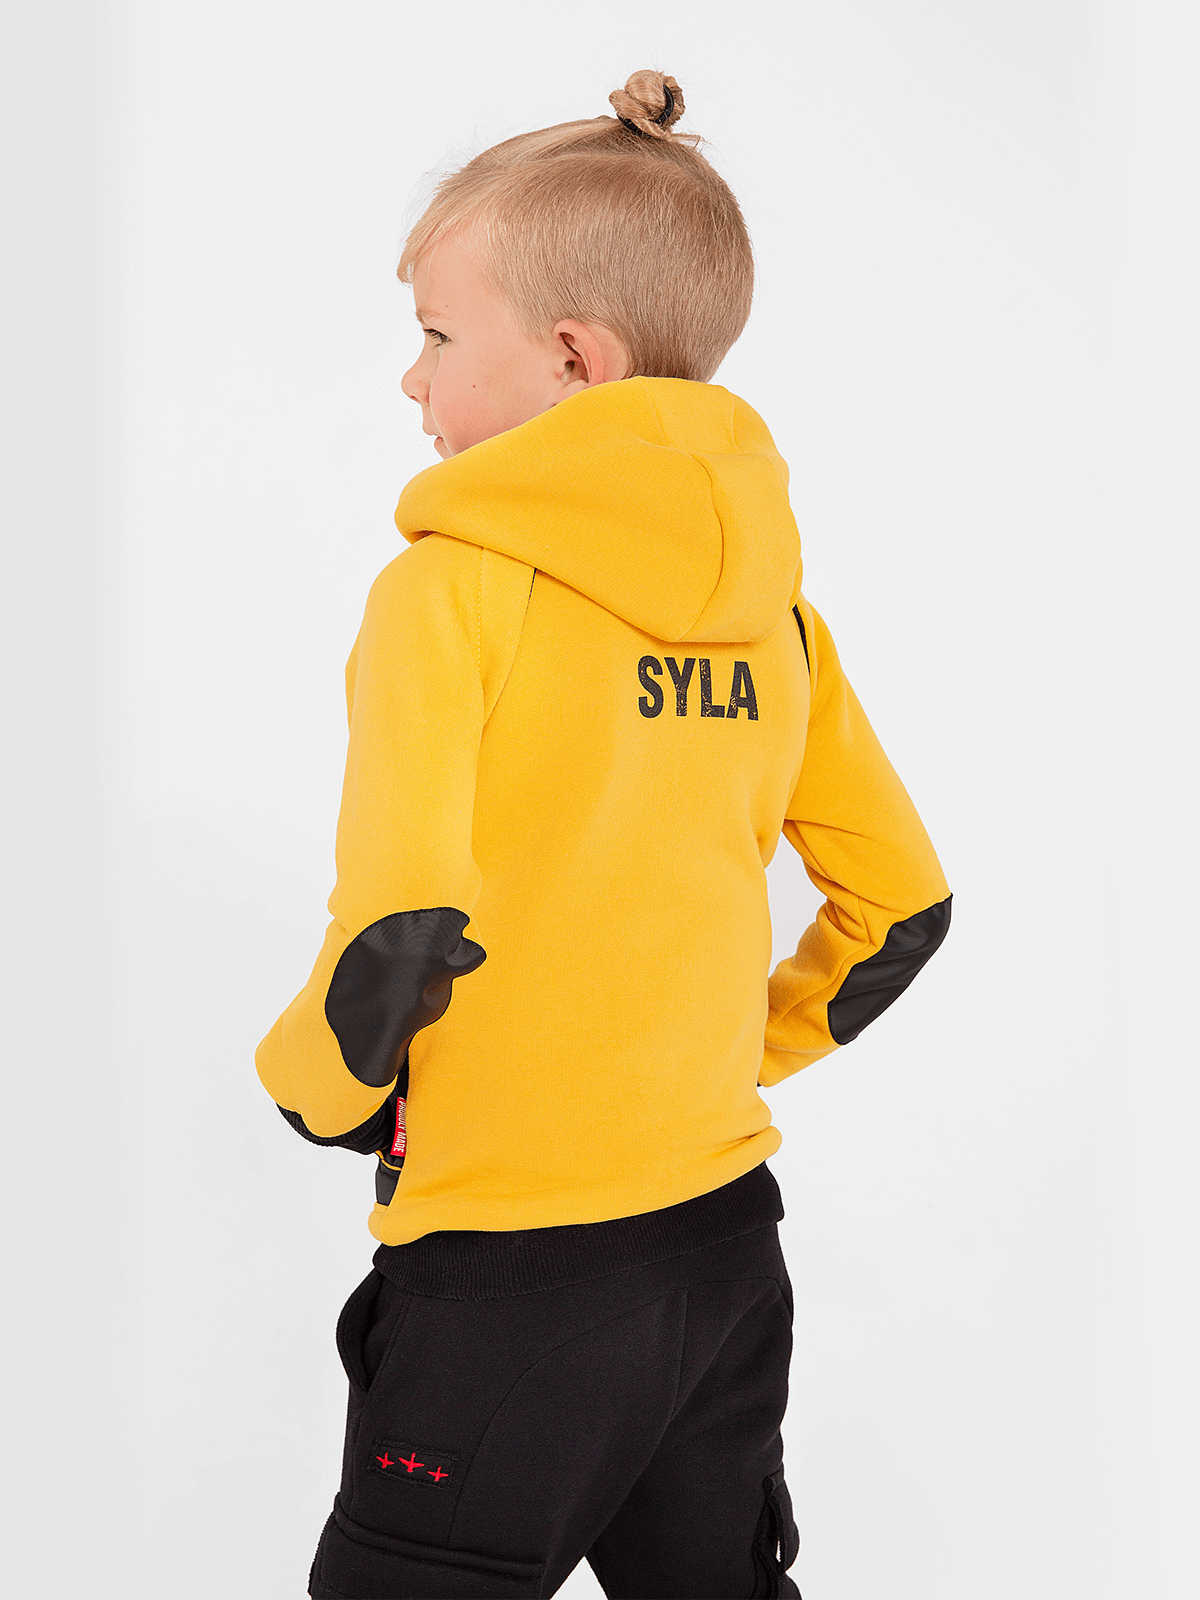 Kids Hoodie Syla. Color yellow.  Well suited for both boys and girls.